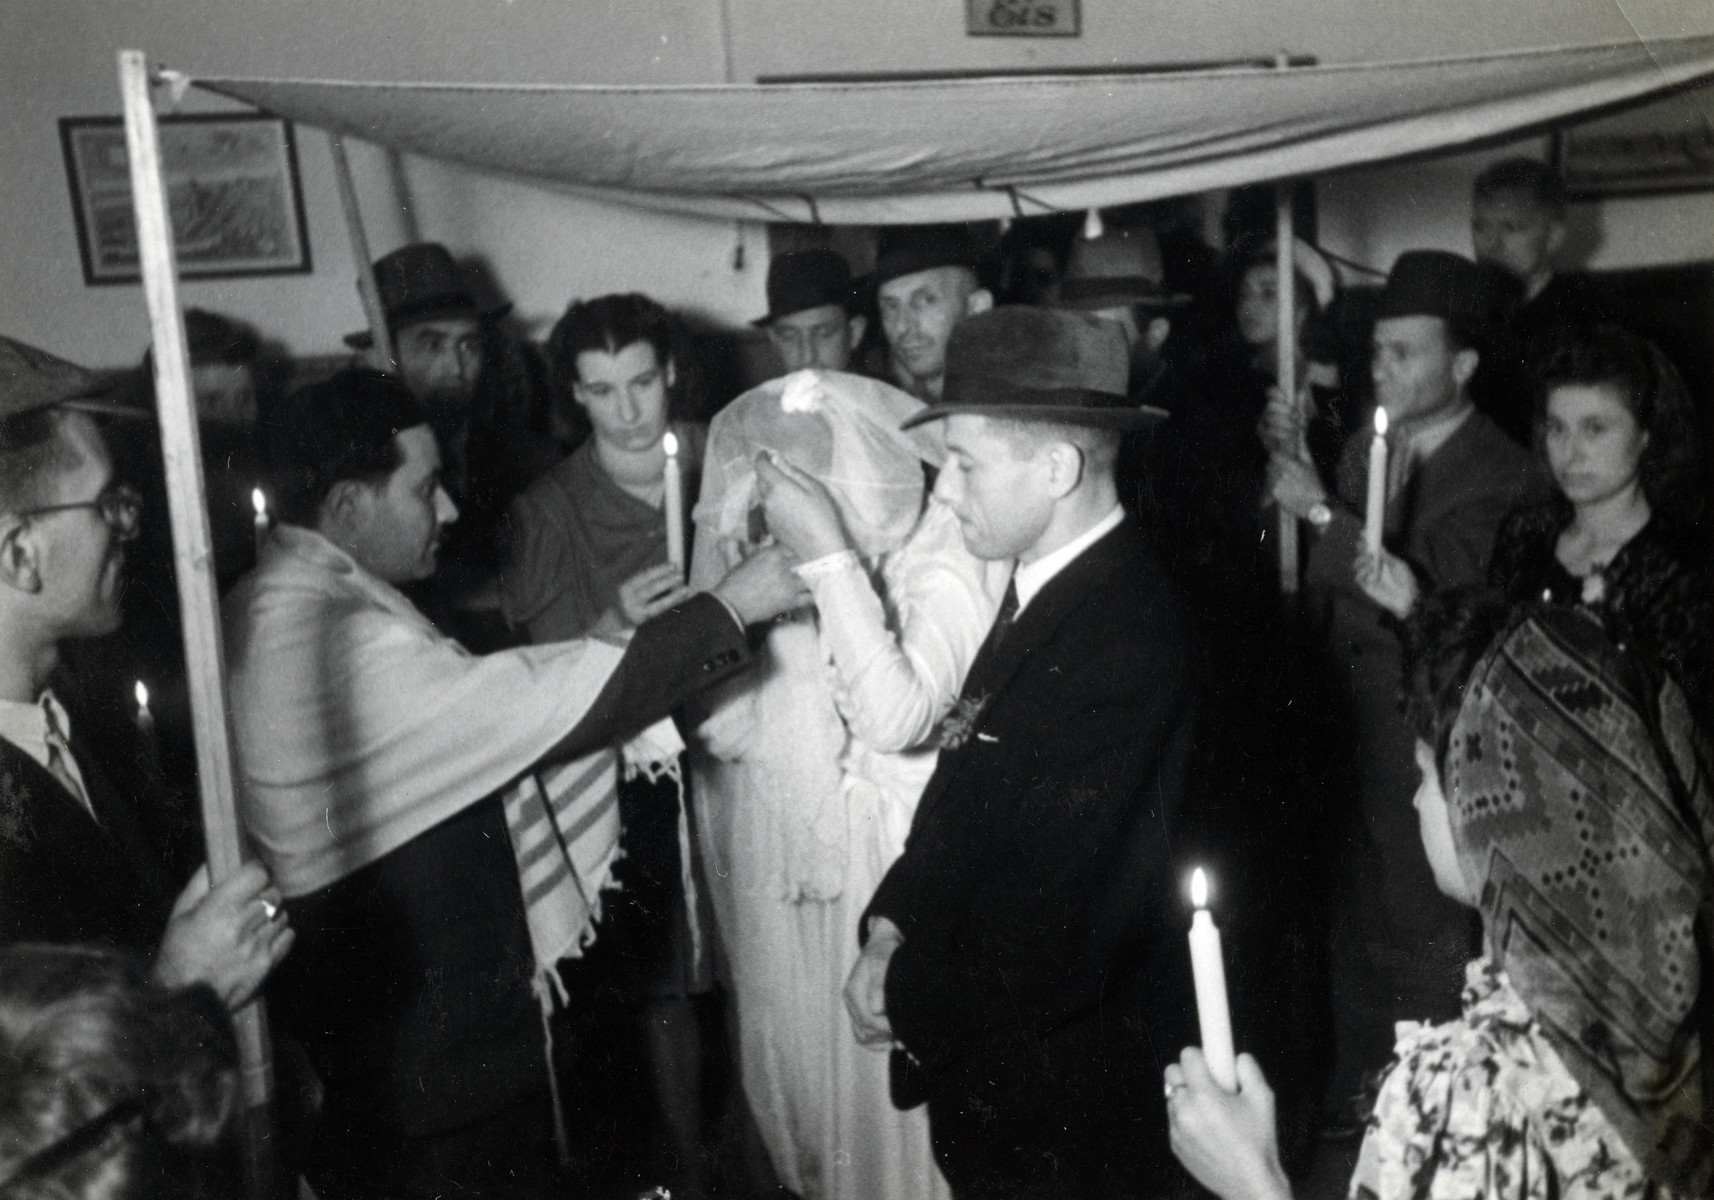 Rabbi Yehuda Lipot Meisels officiates at a wedding in the Pocking displaced persons camp.